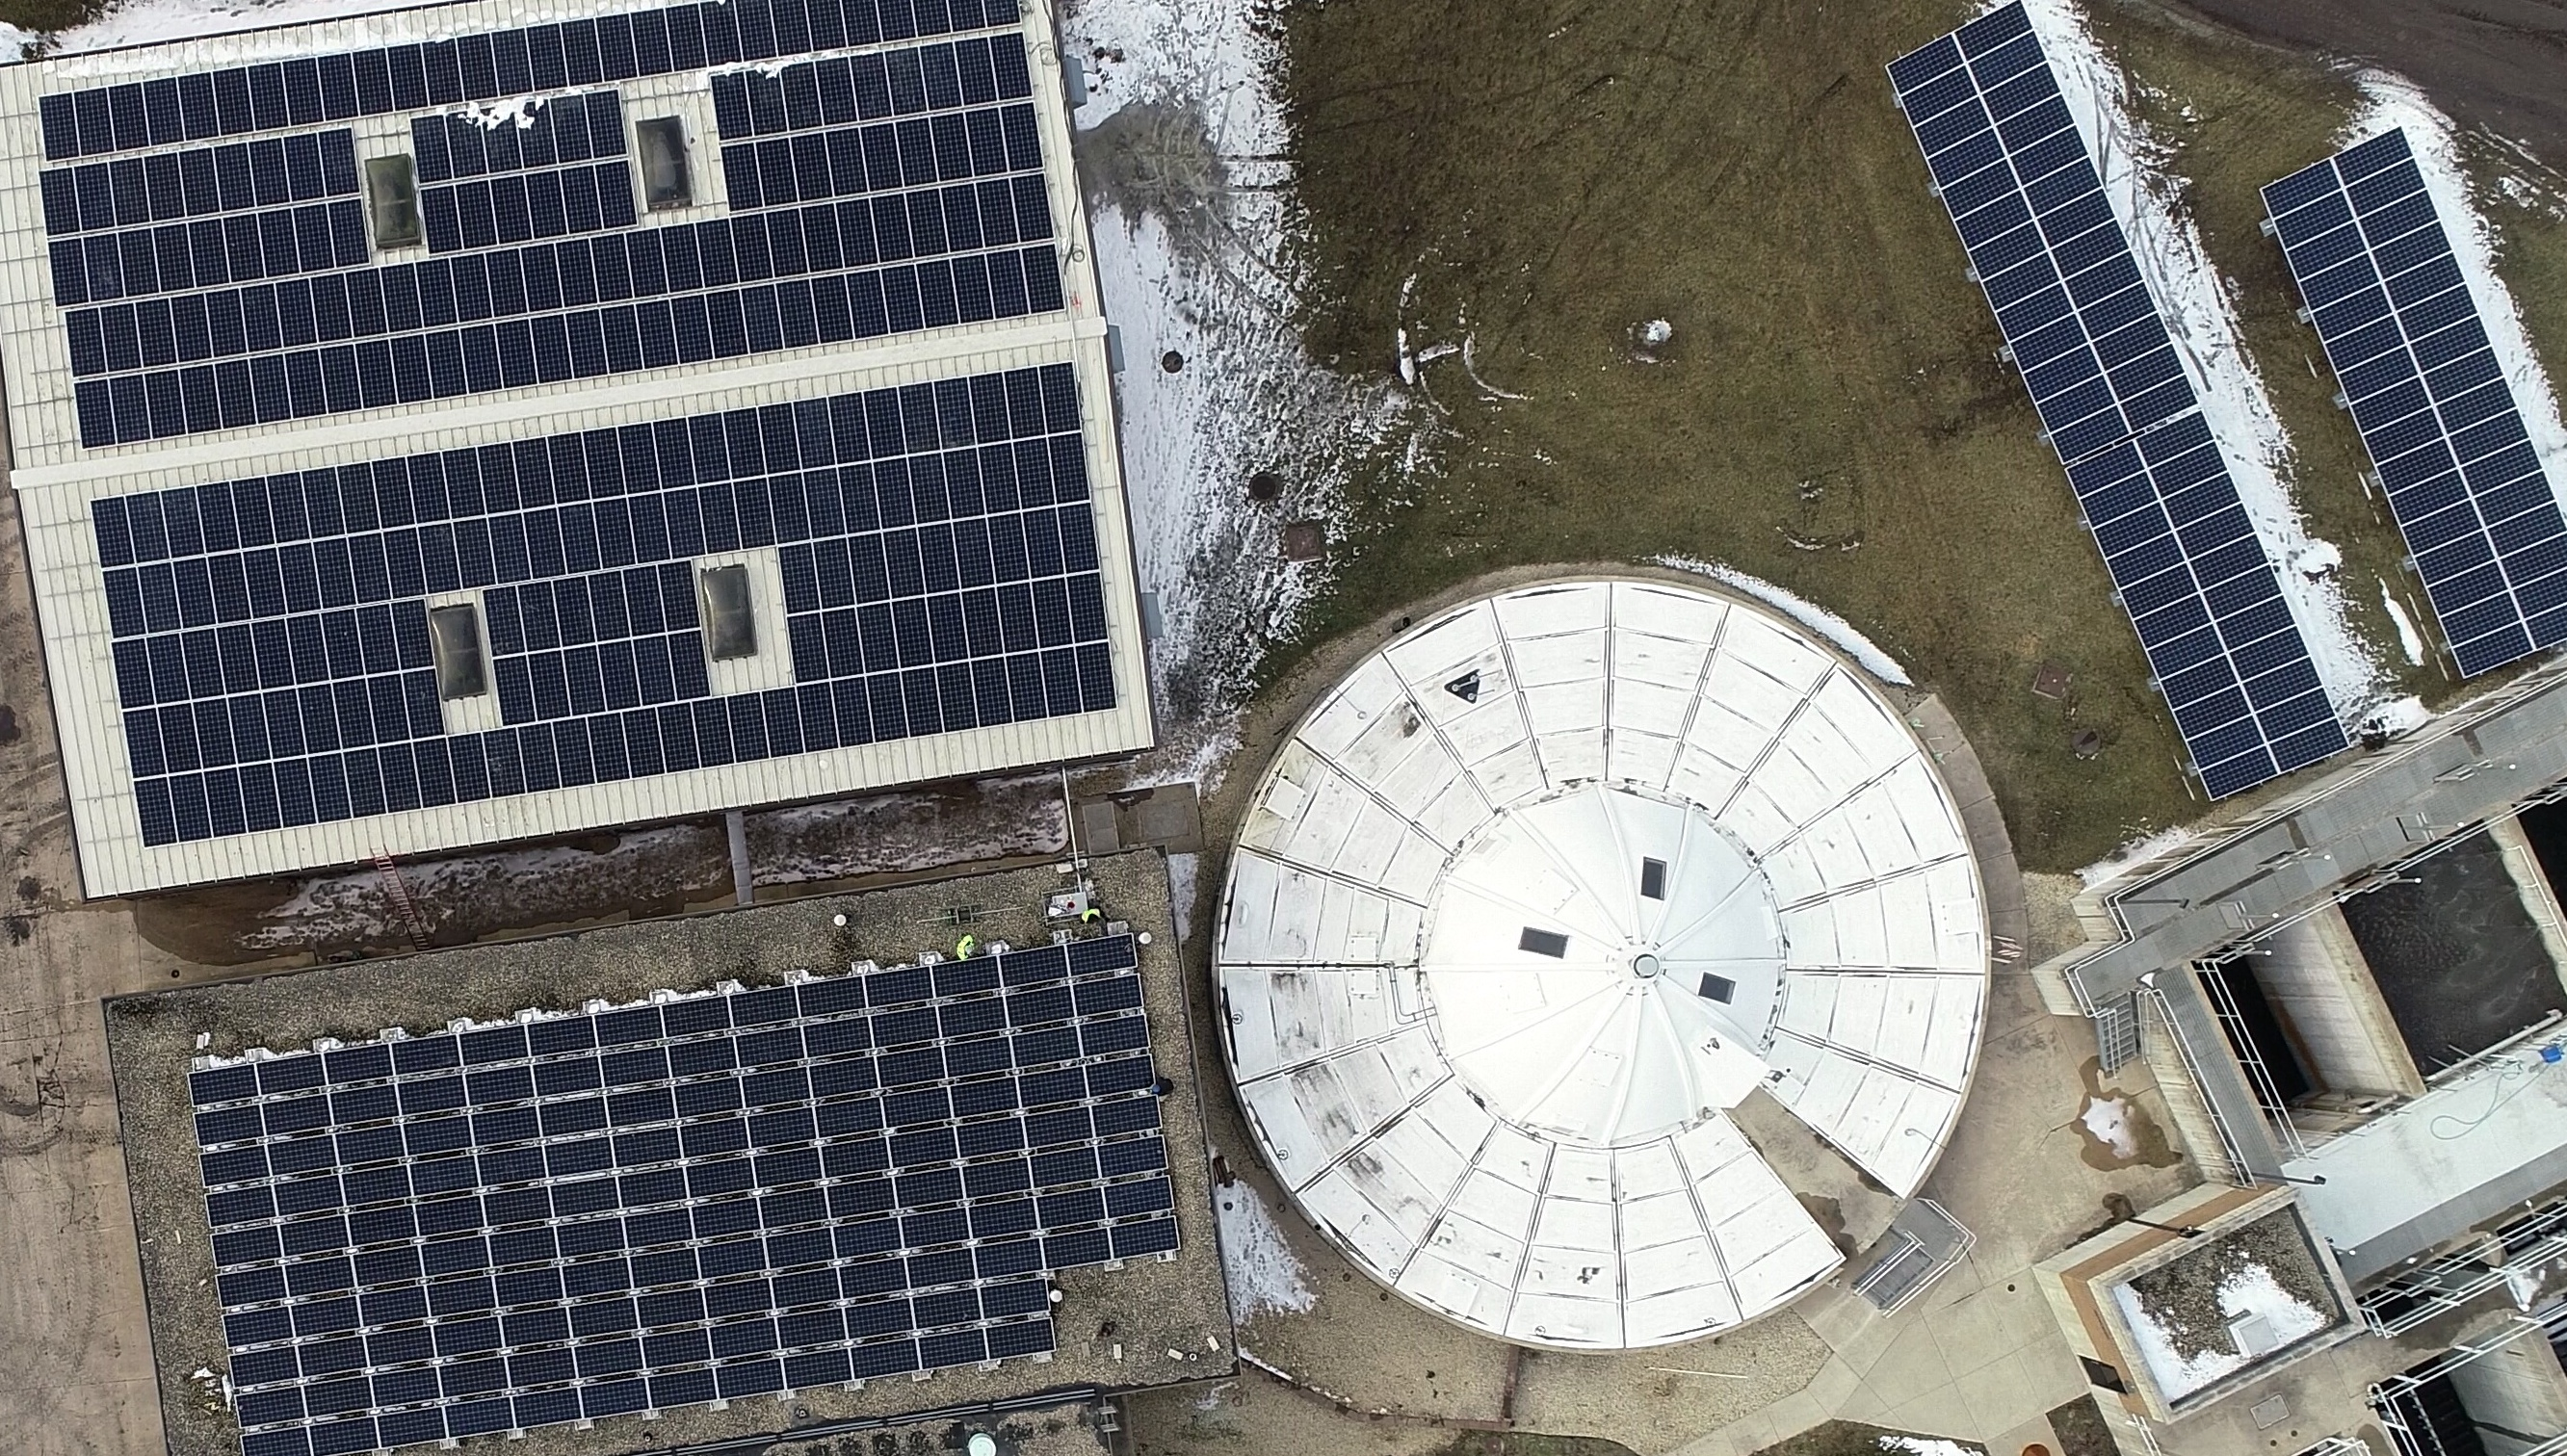 Plano, Illinois ComEd solar grid with Distributed Generation system